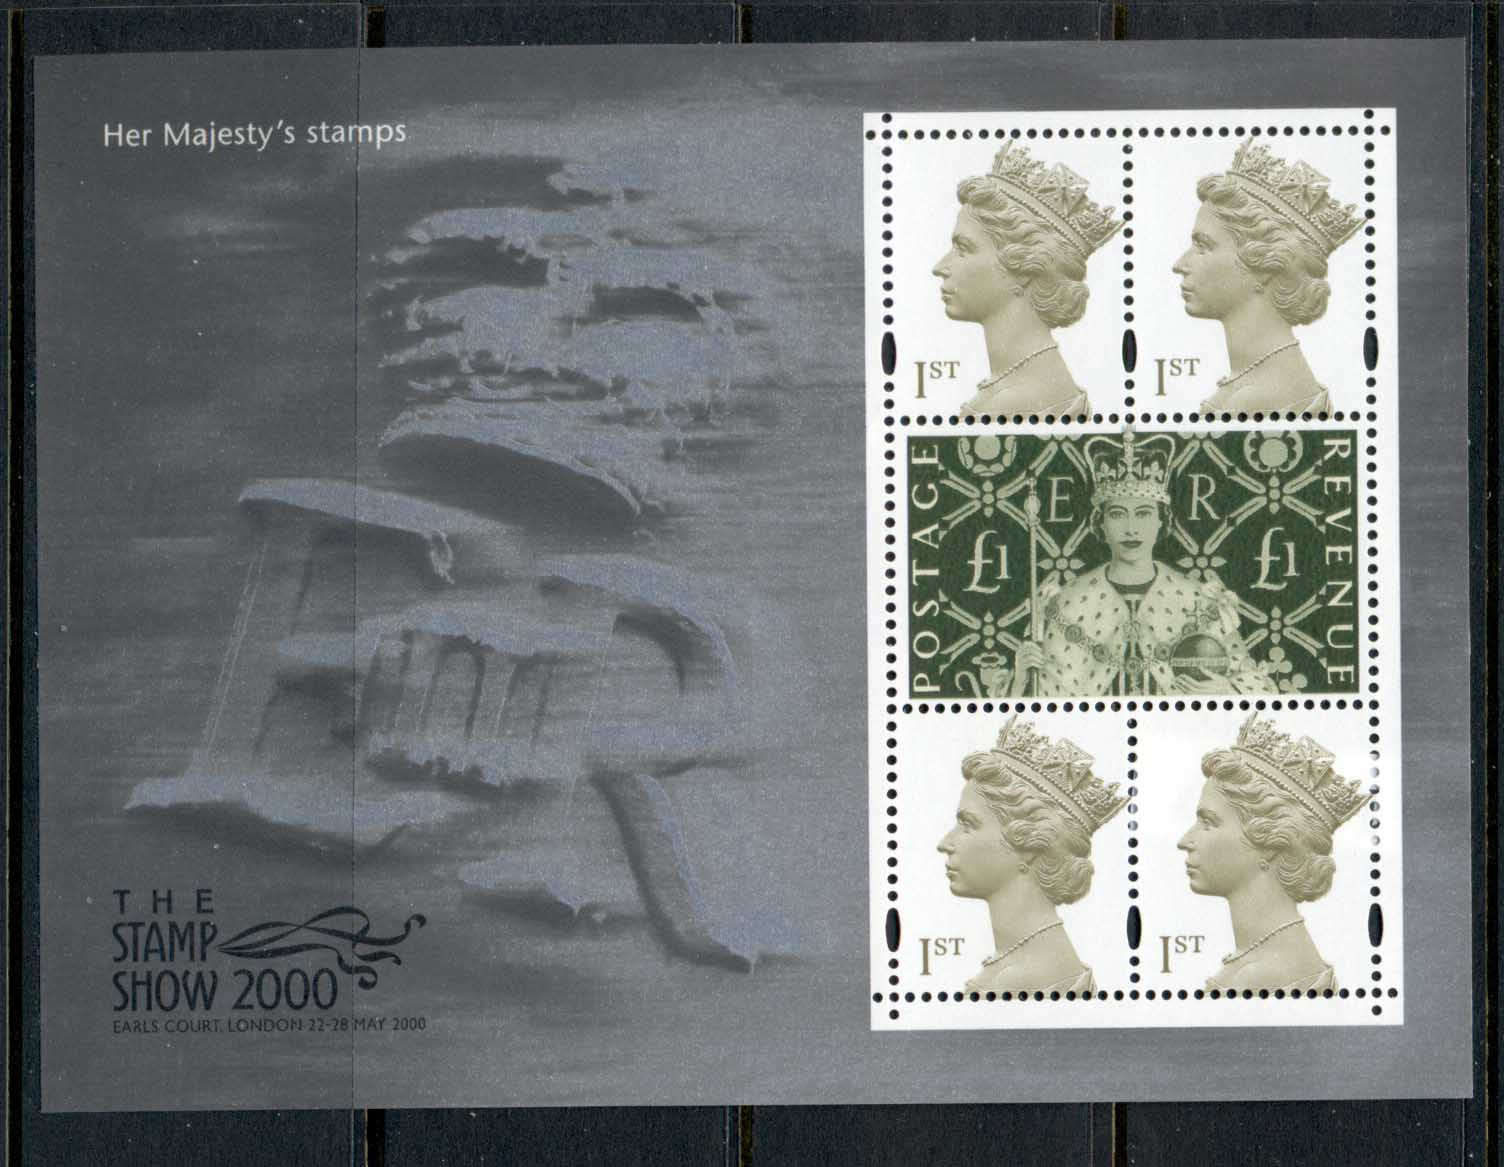 GB 2000 Her Majesty's Stamps Stamp Show MS MUH